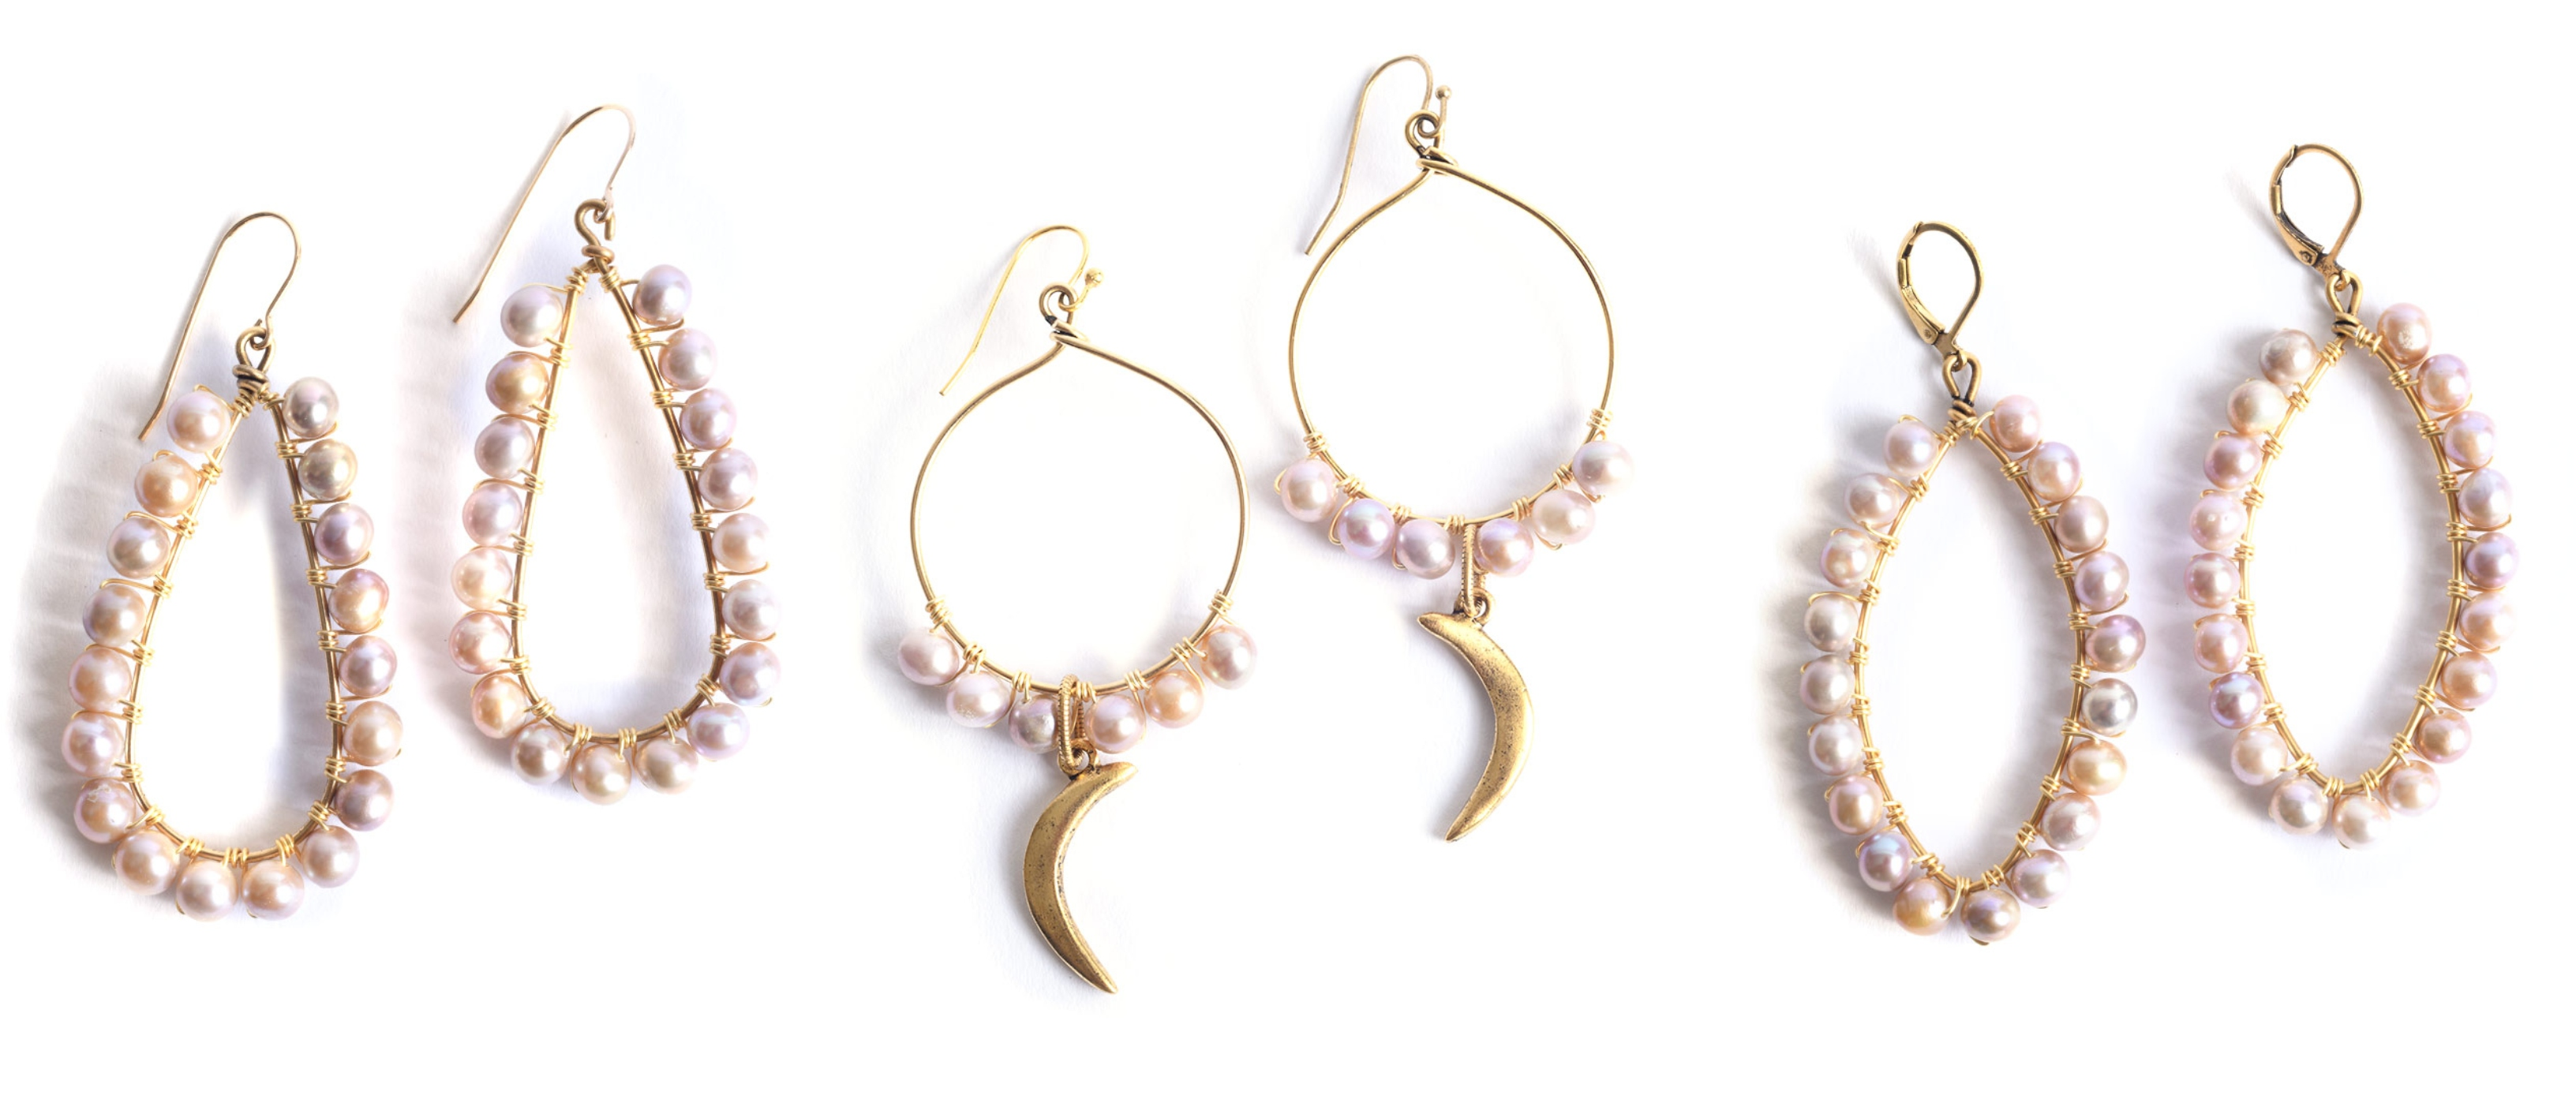 Nunn Design Wrapped Pearl Earring Variations